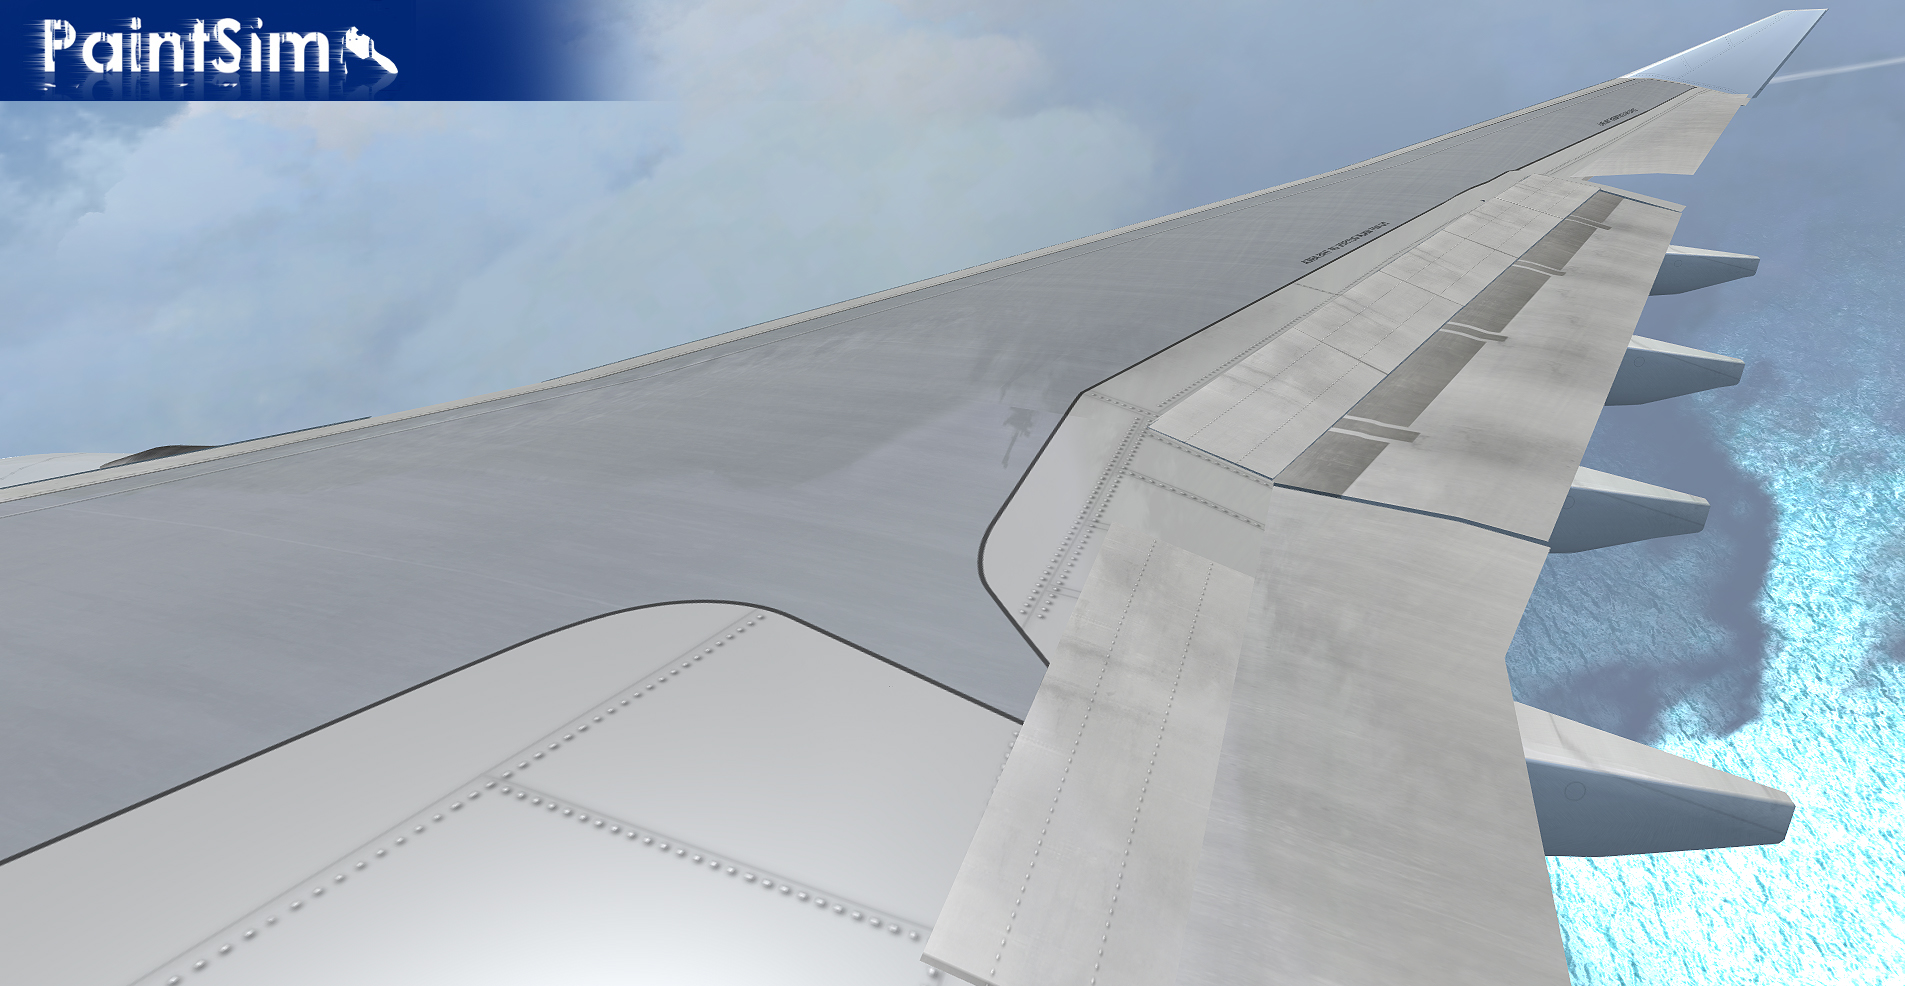 PAINTSIM - ULTRA HD TEXTURE PACK FOR WILCO AIRBUS A330-300 FSX